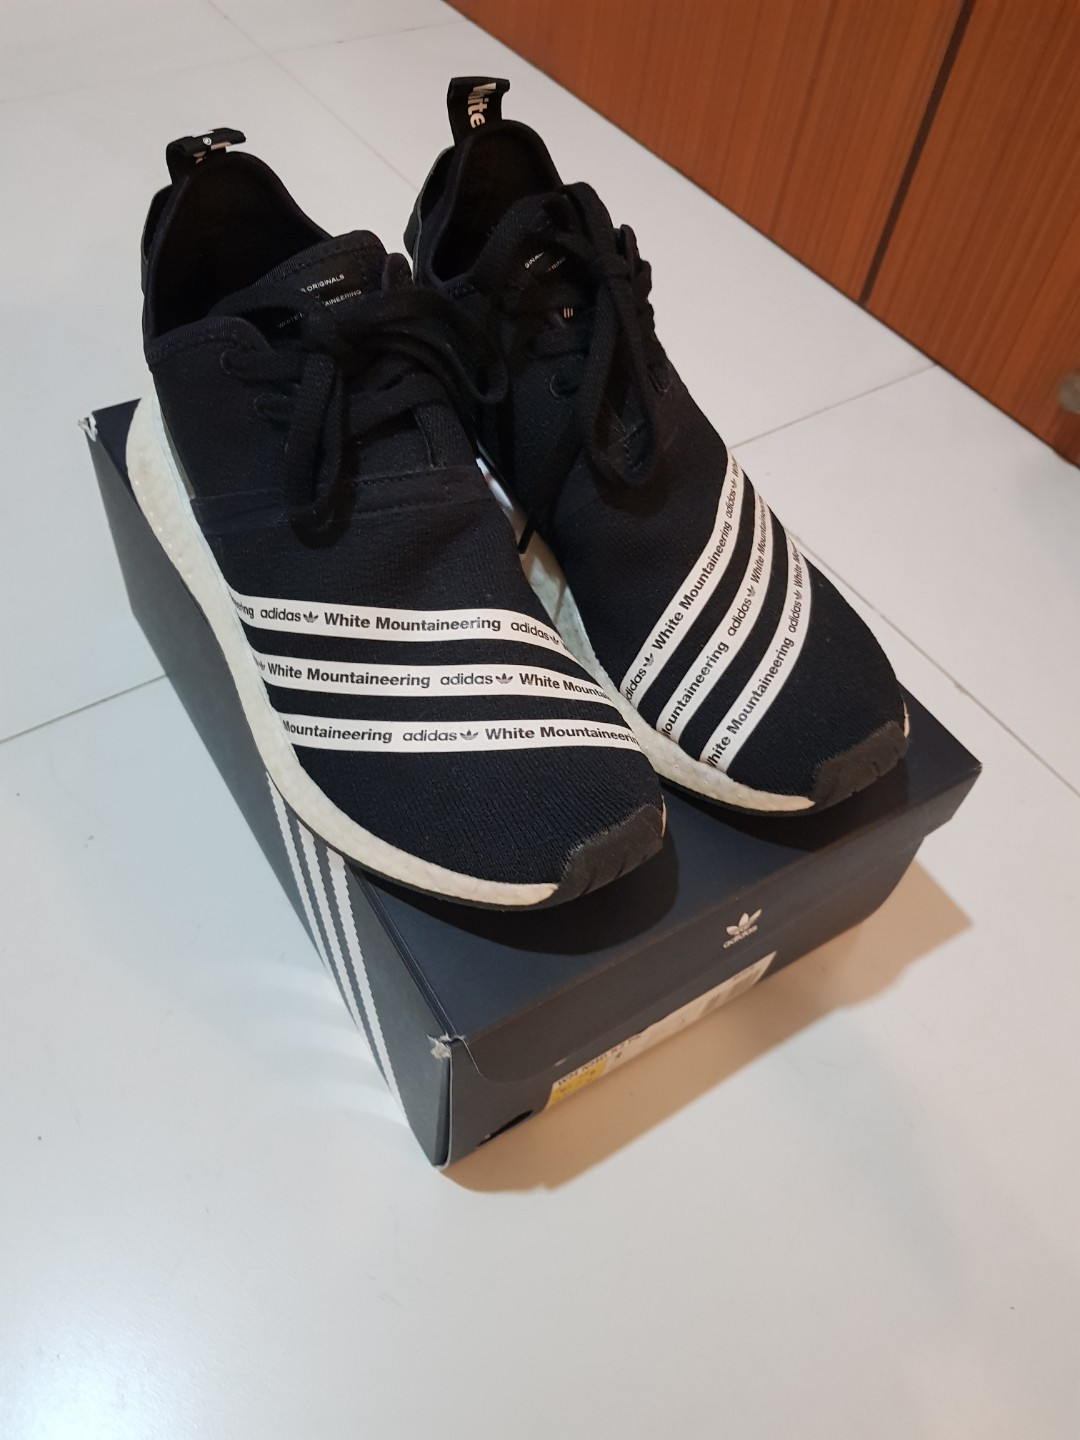 newest e4d60 a95a5 Nmd White Mountaineering R2 Black